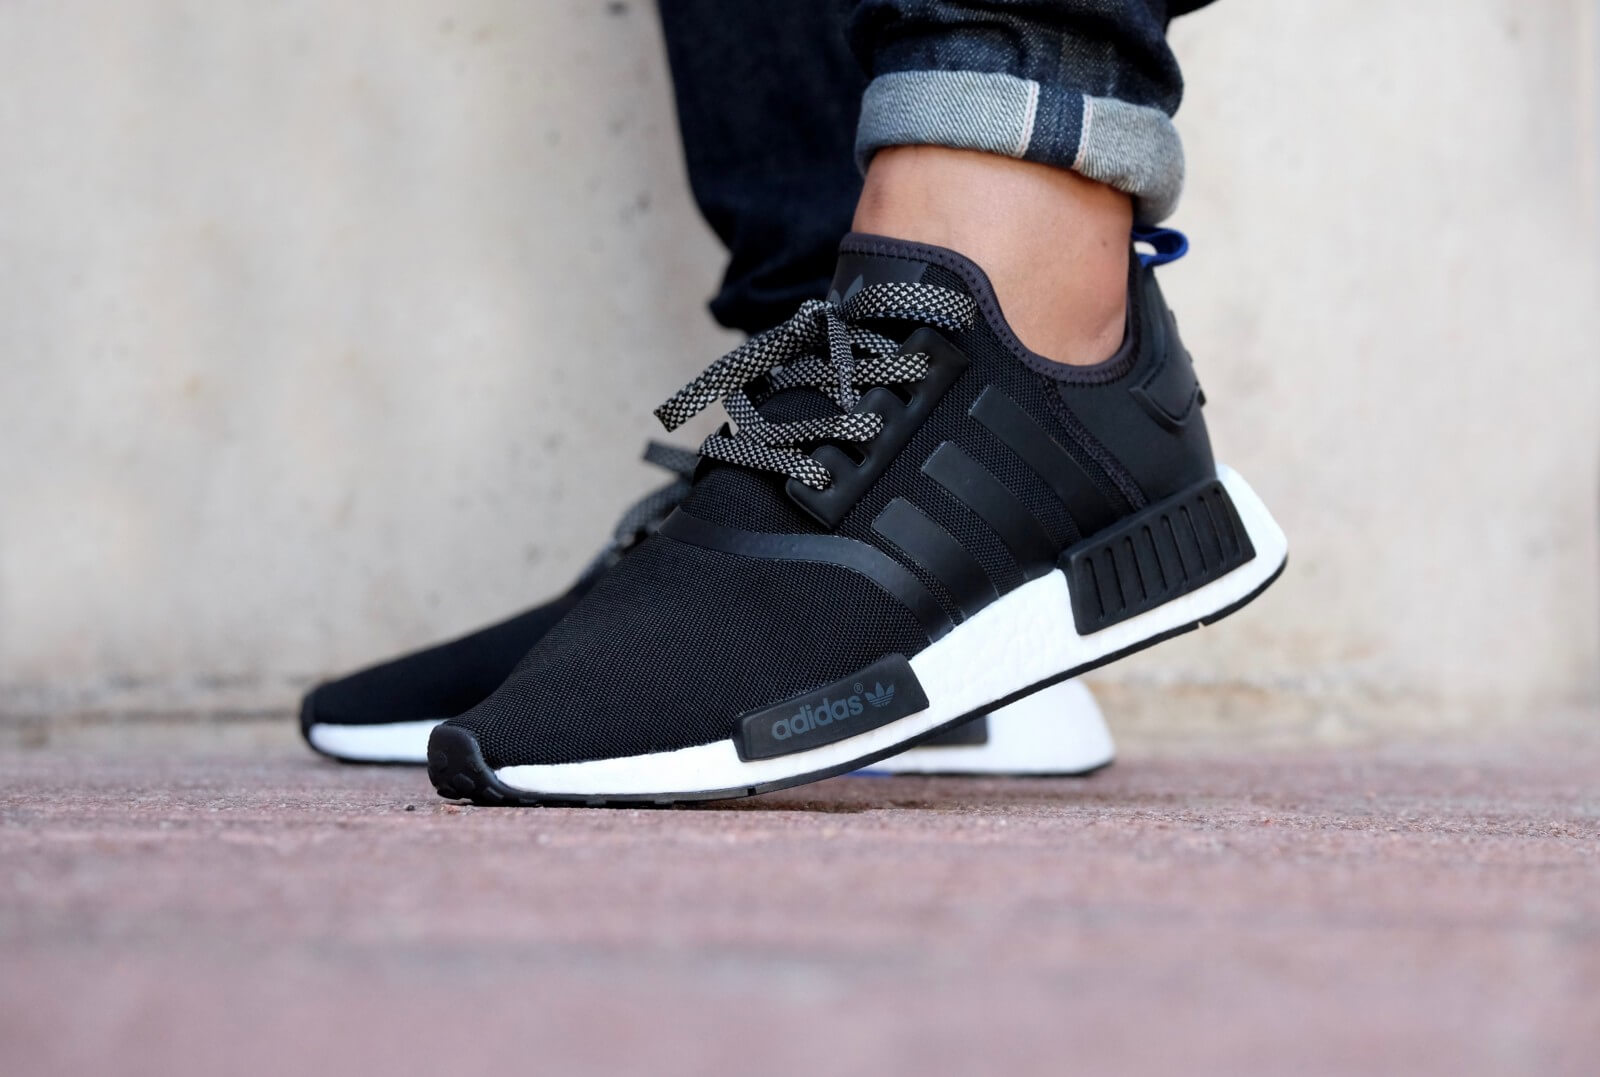 e4bf06011 Authentic Adidas NMD R1 Mesh Black Charcoal UK9 Shoes for sale